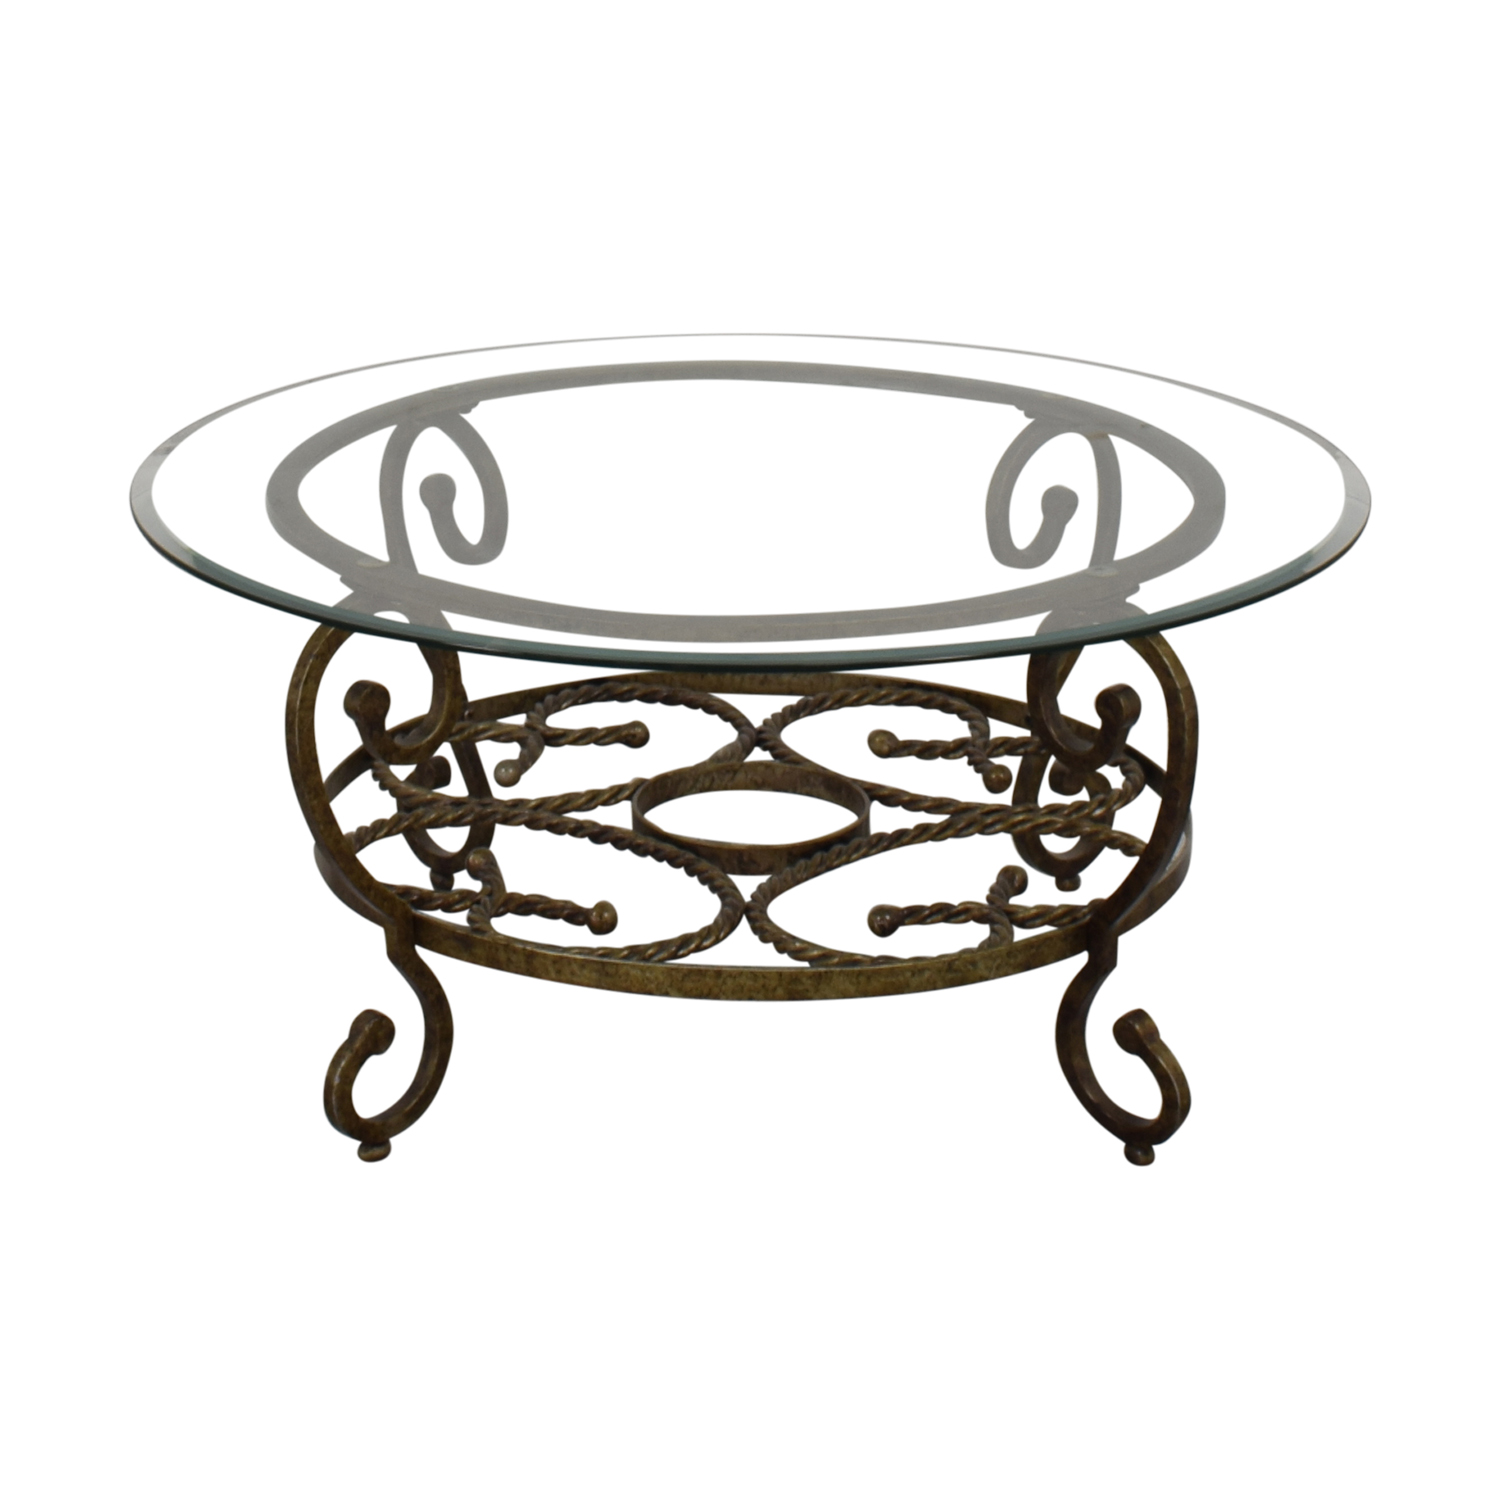 Bassett Furniture Bassett Furniture Coffee Table bronze